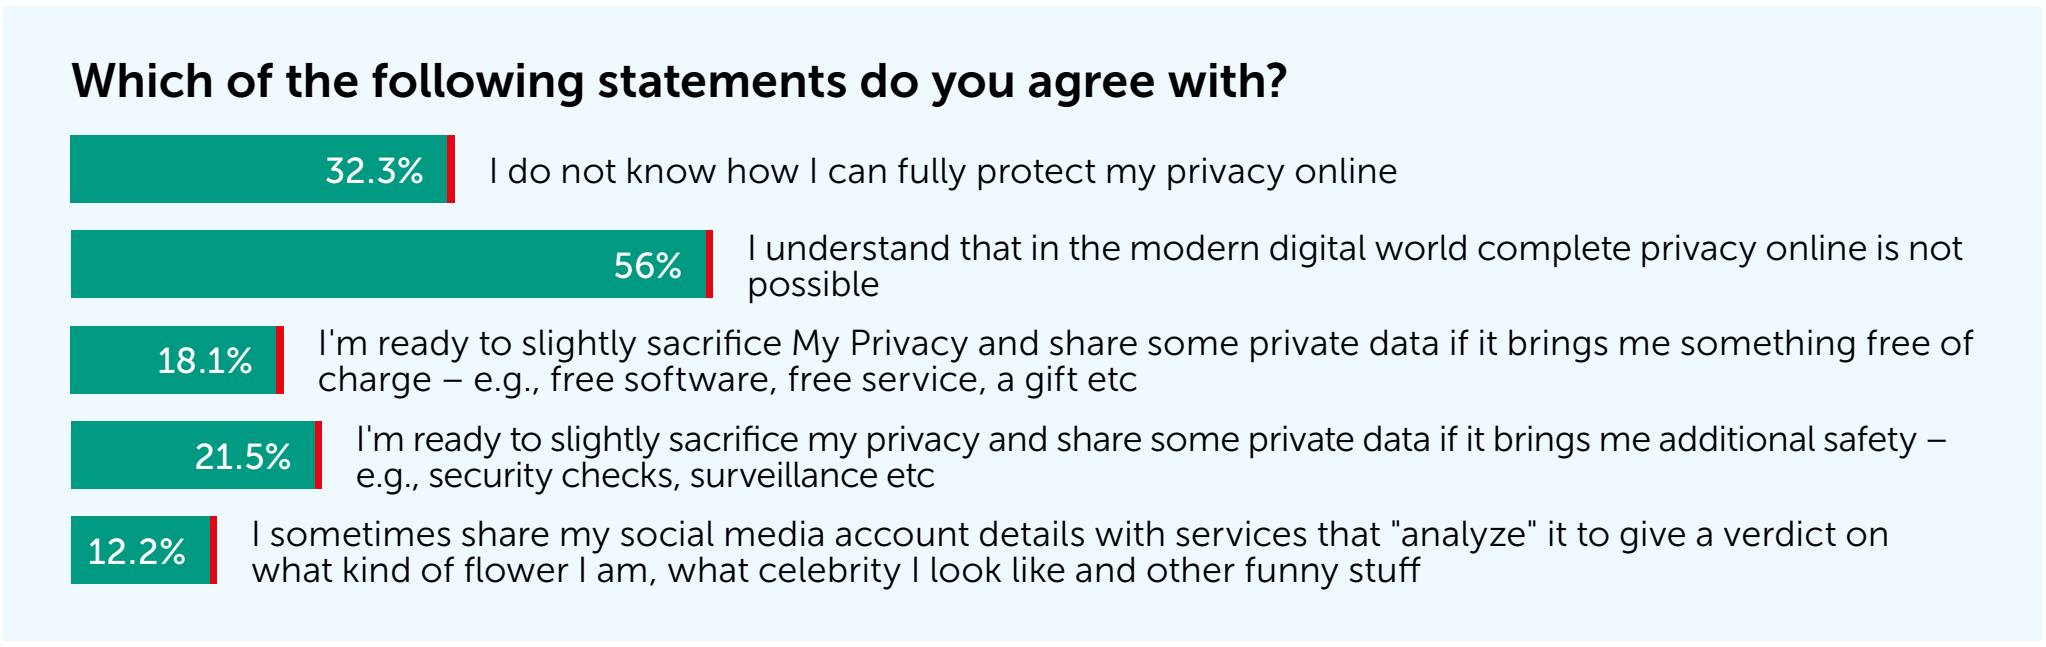 The extent of privacy sacrifice and confidence in the ability to protect personal data online